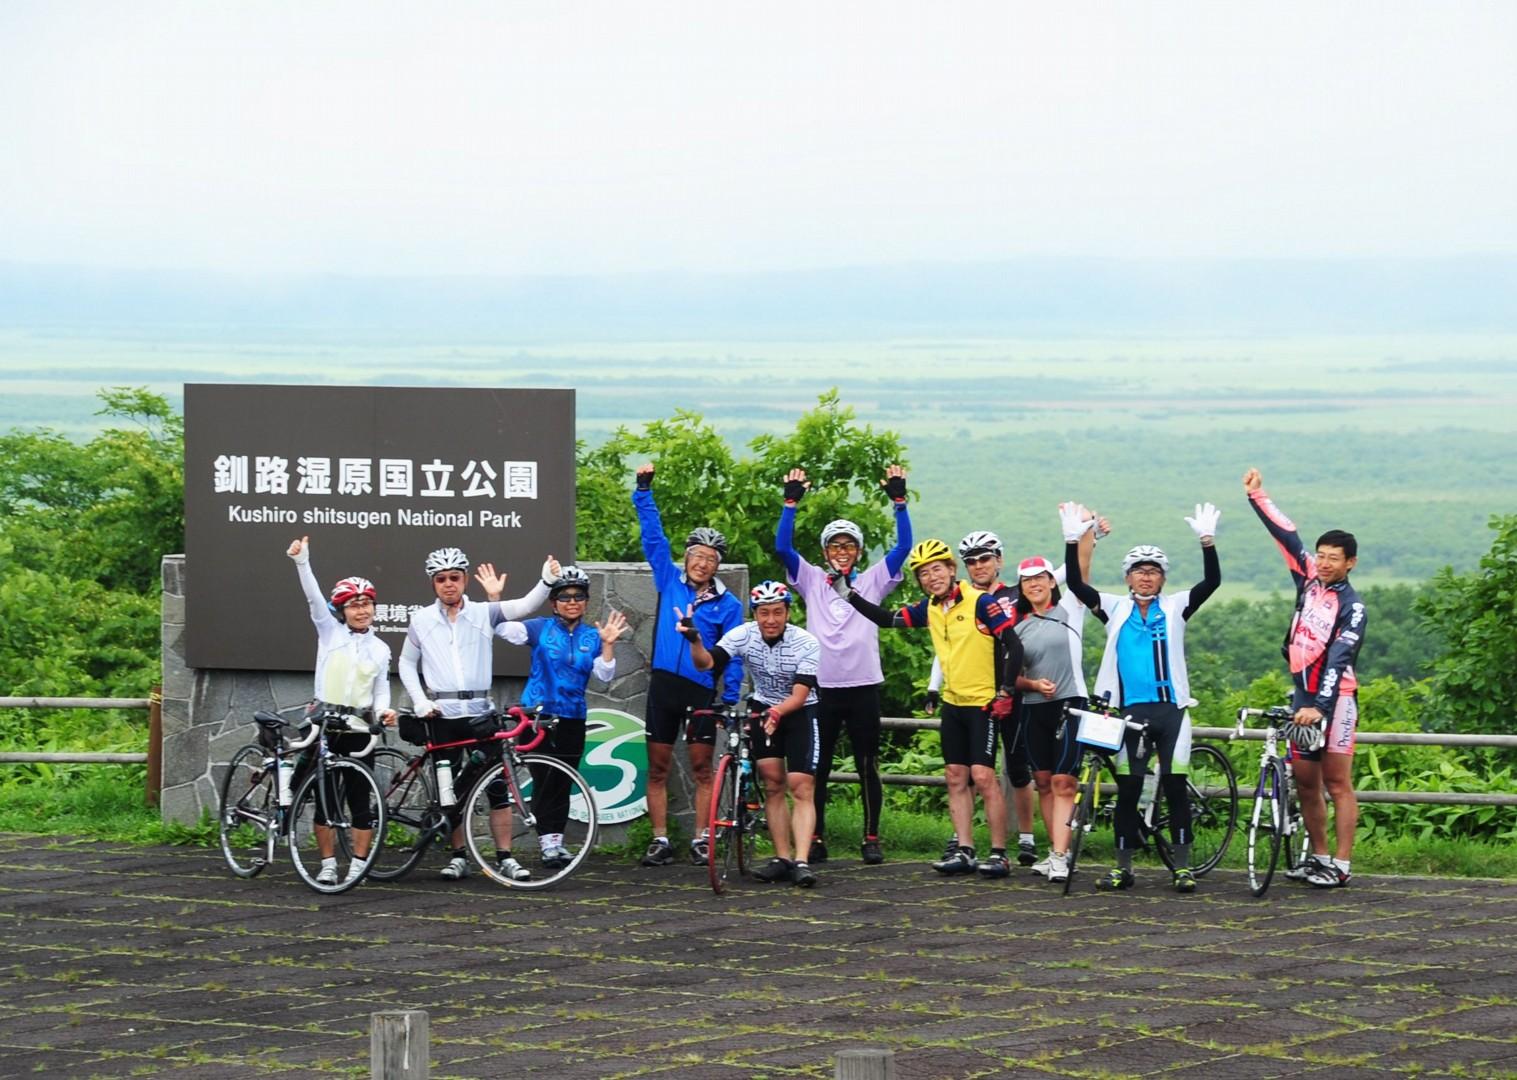 japan-undiscovered-japan-the-heart-of-hokkaido-cycling-adventure.JPG - Japan - Undiscovered Japan - The Heart of Hokkaido - Cycling Holiday - Cycling Adventures